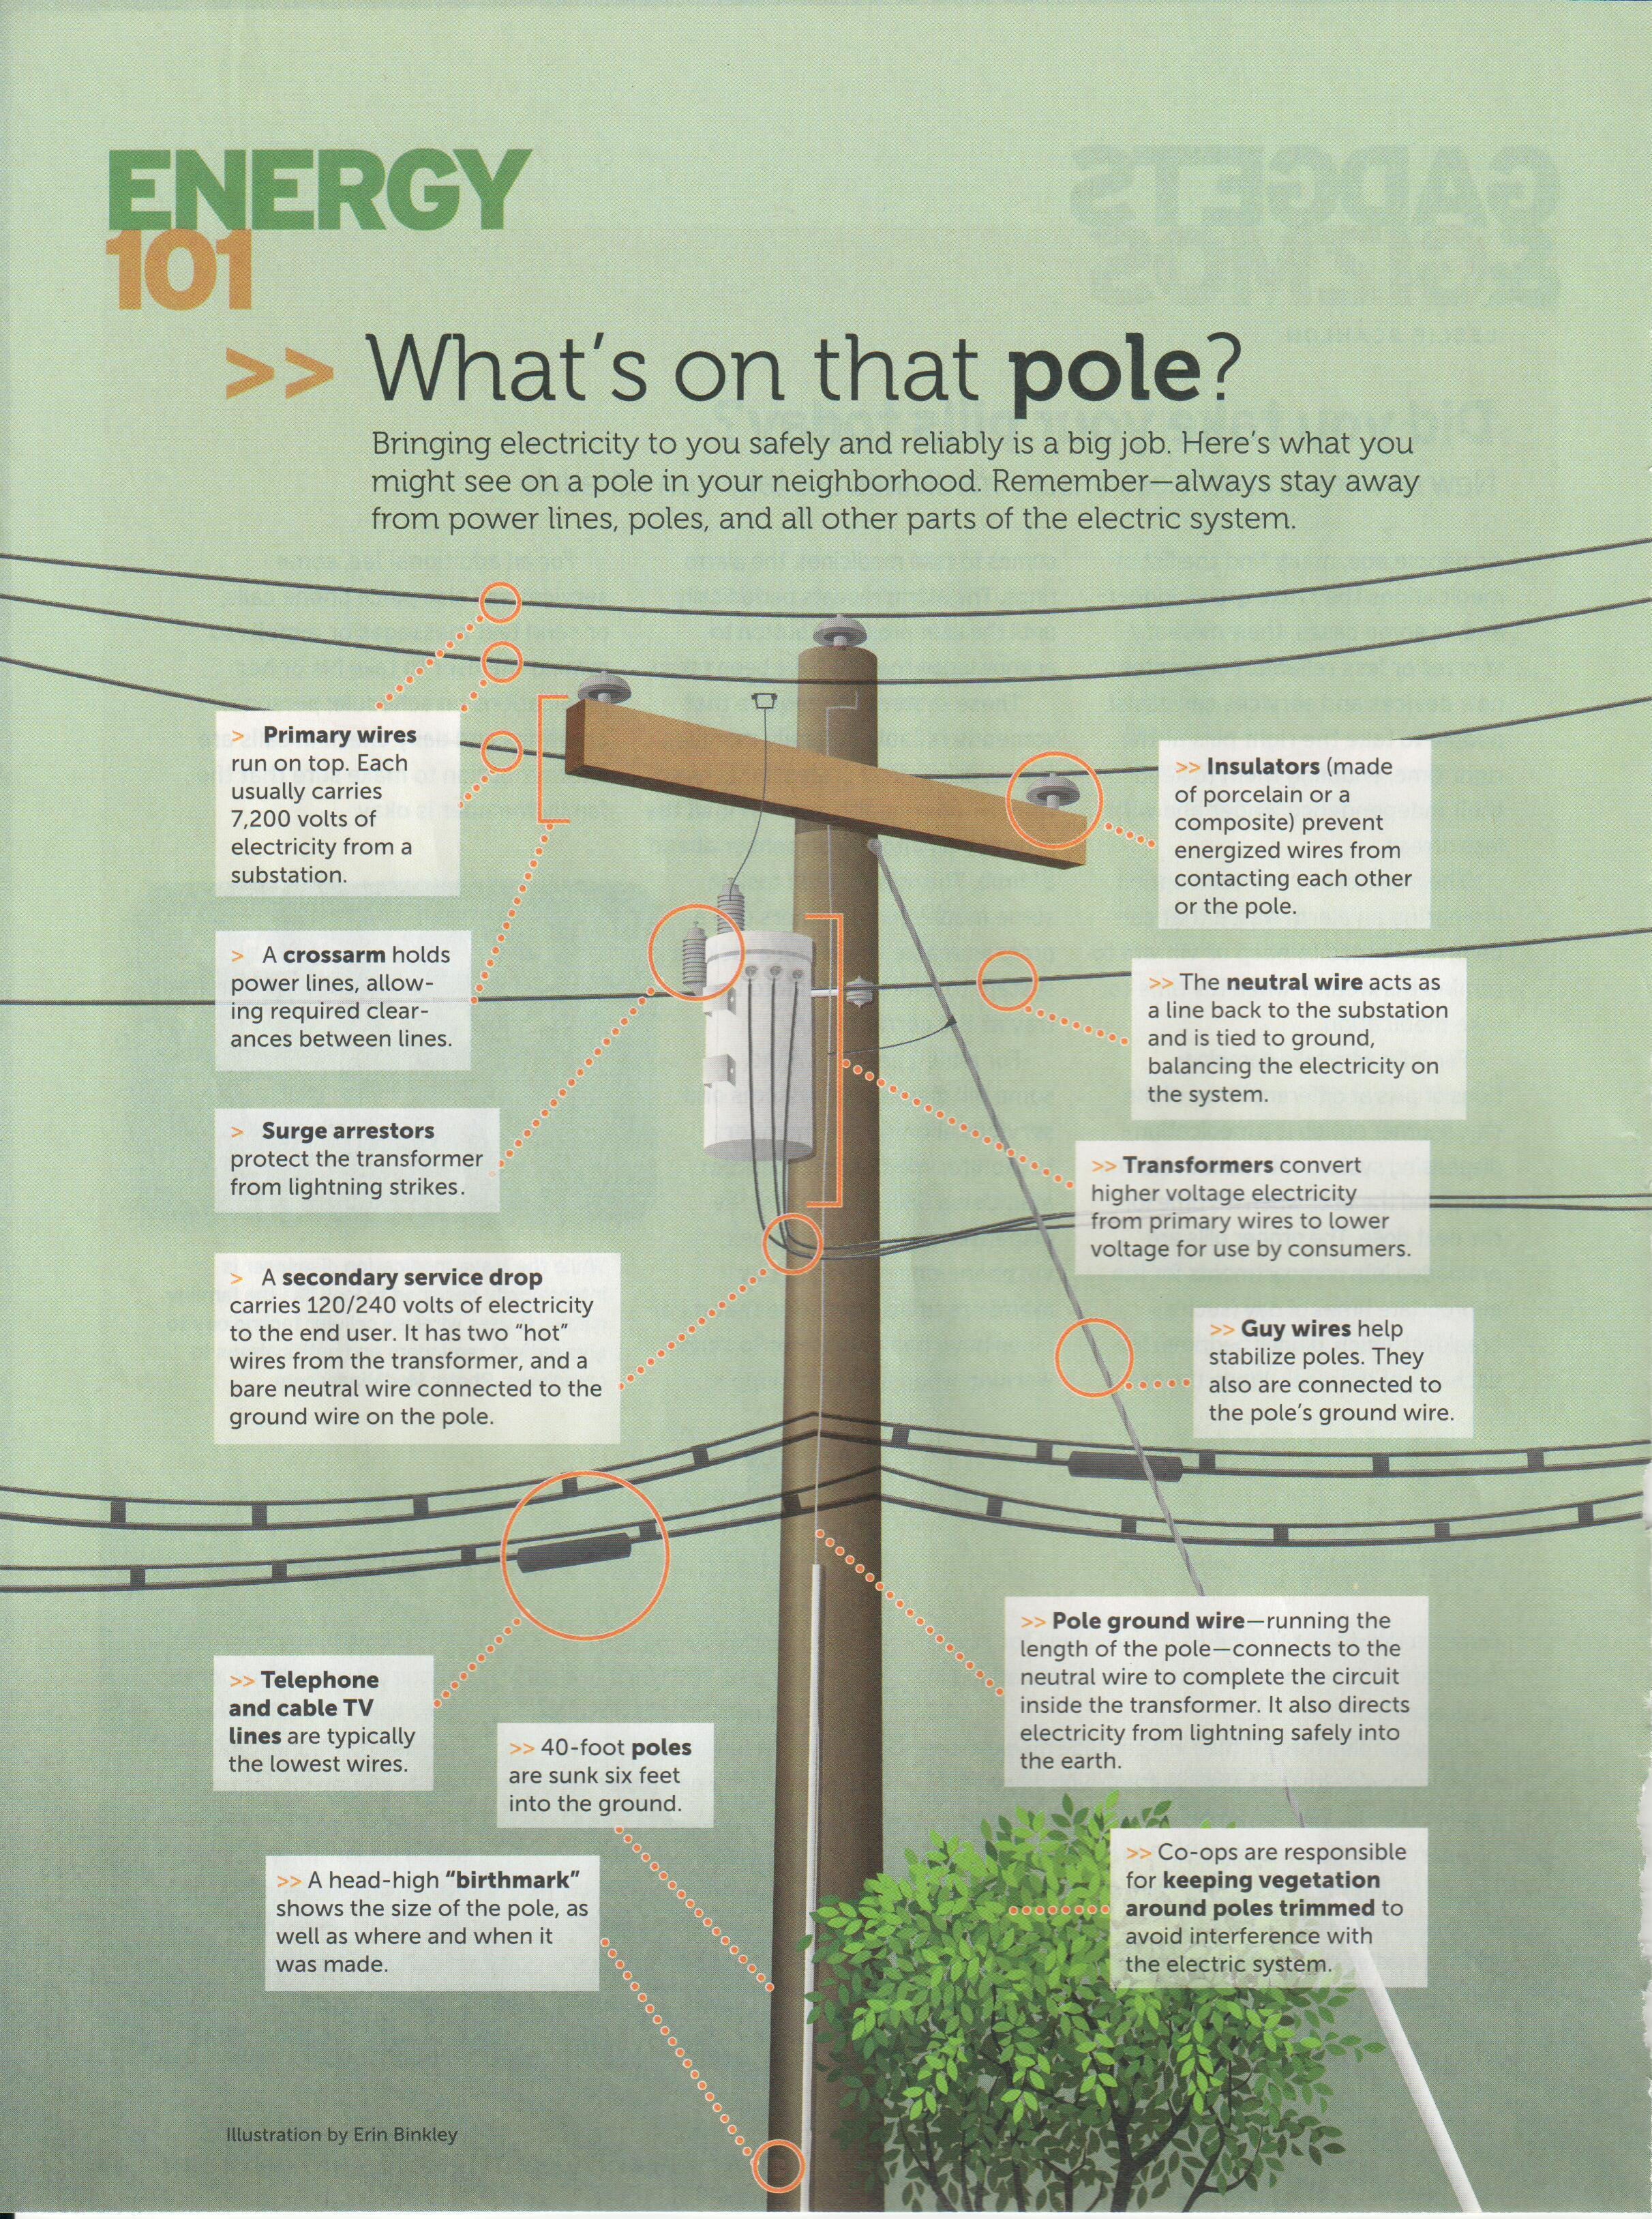 Infographic about what is on a utility pole